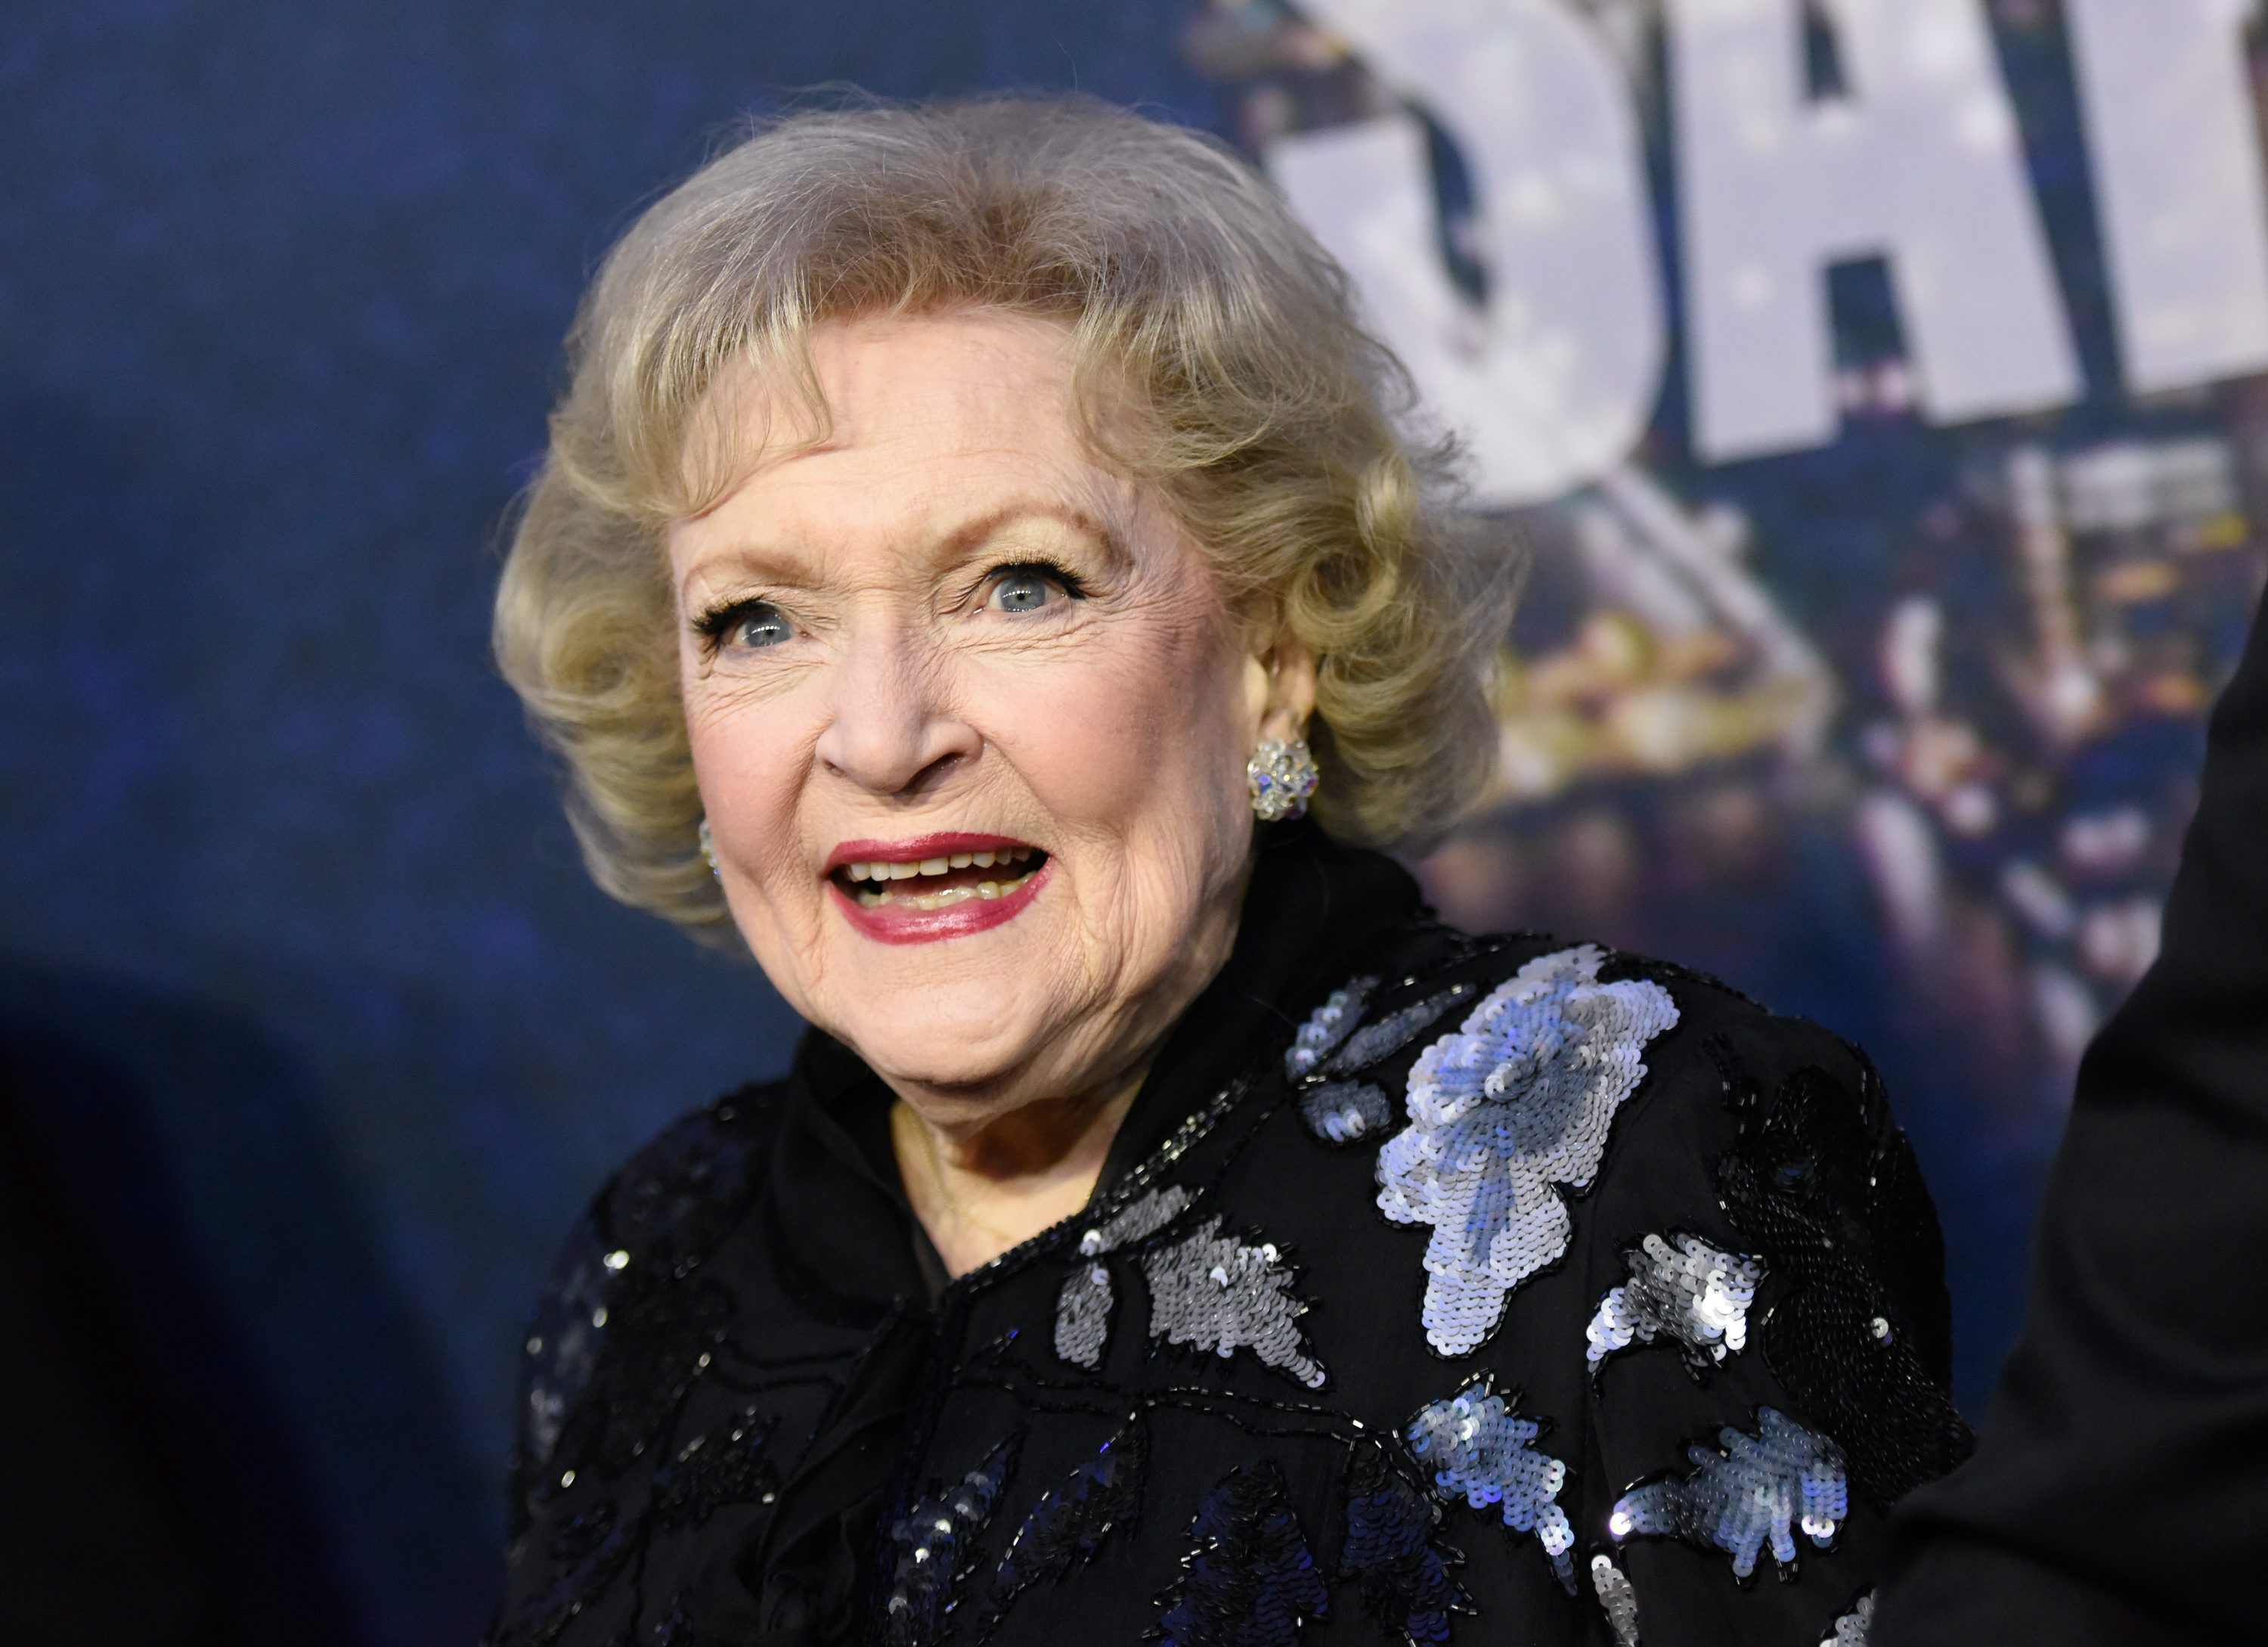 Lifetime Delays Upcoming Betty White Christmas Film To 2021